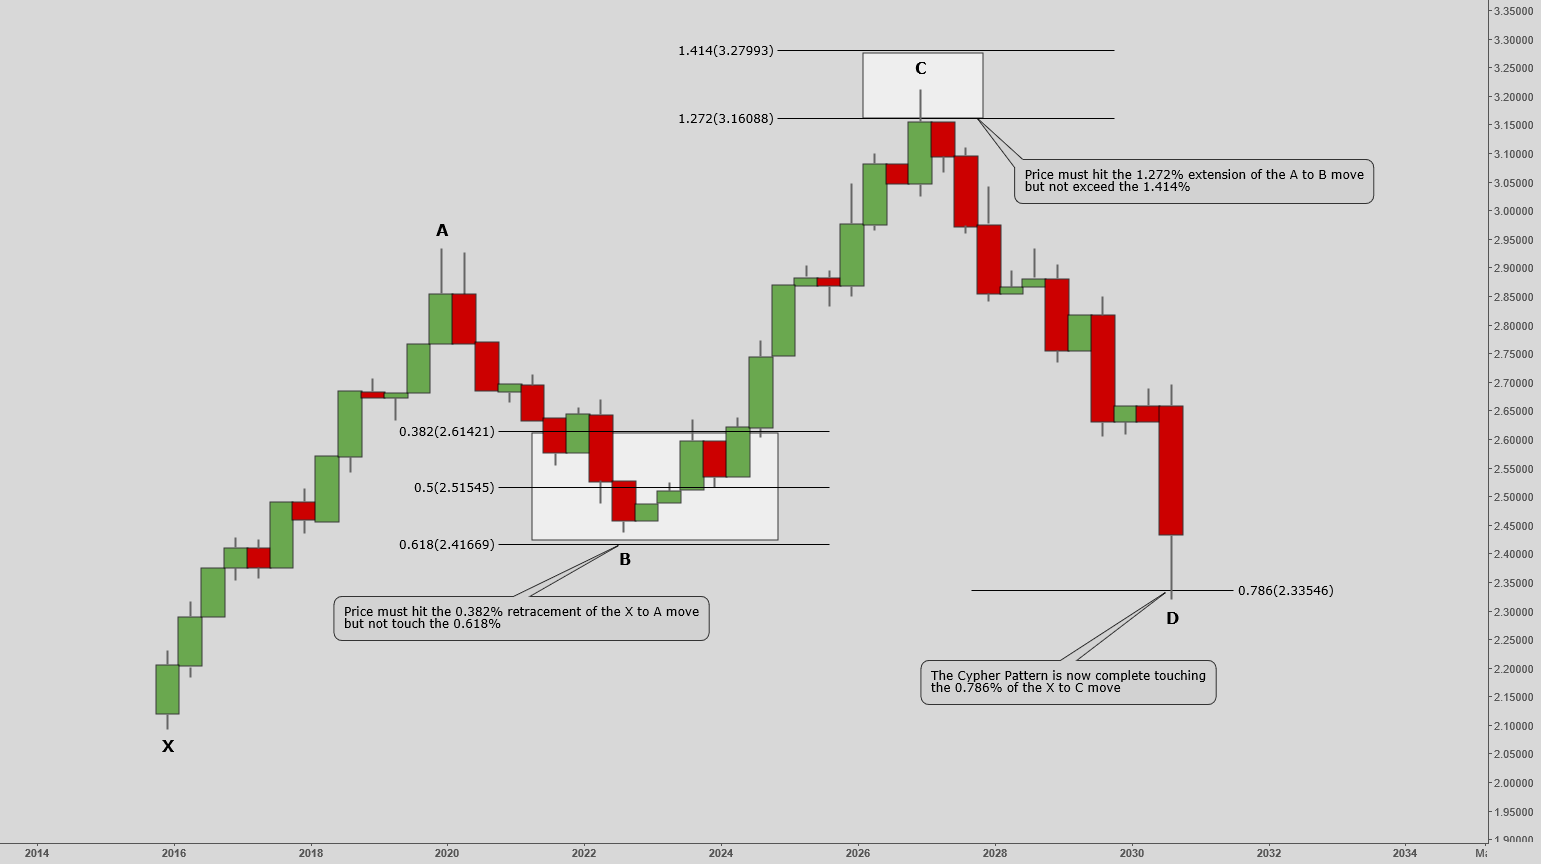 How To Trade The Cypher Pattern.